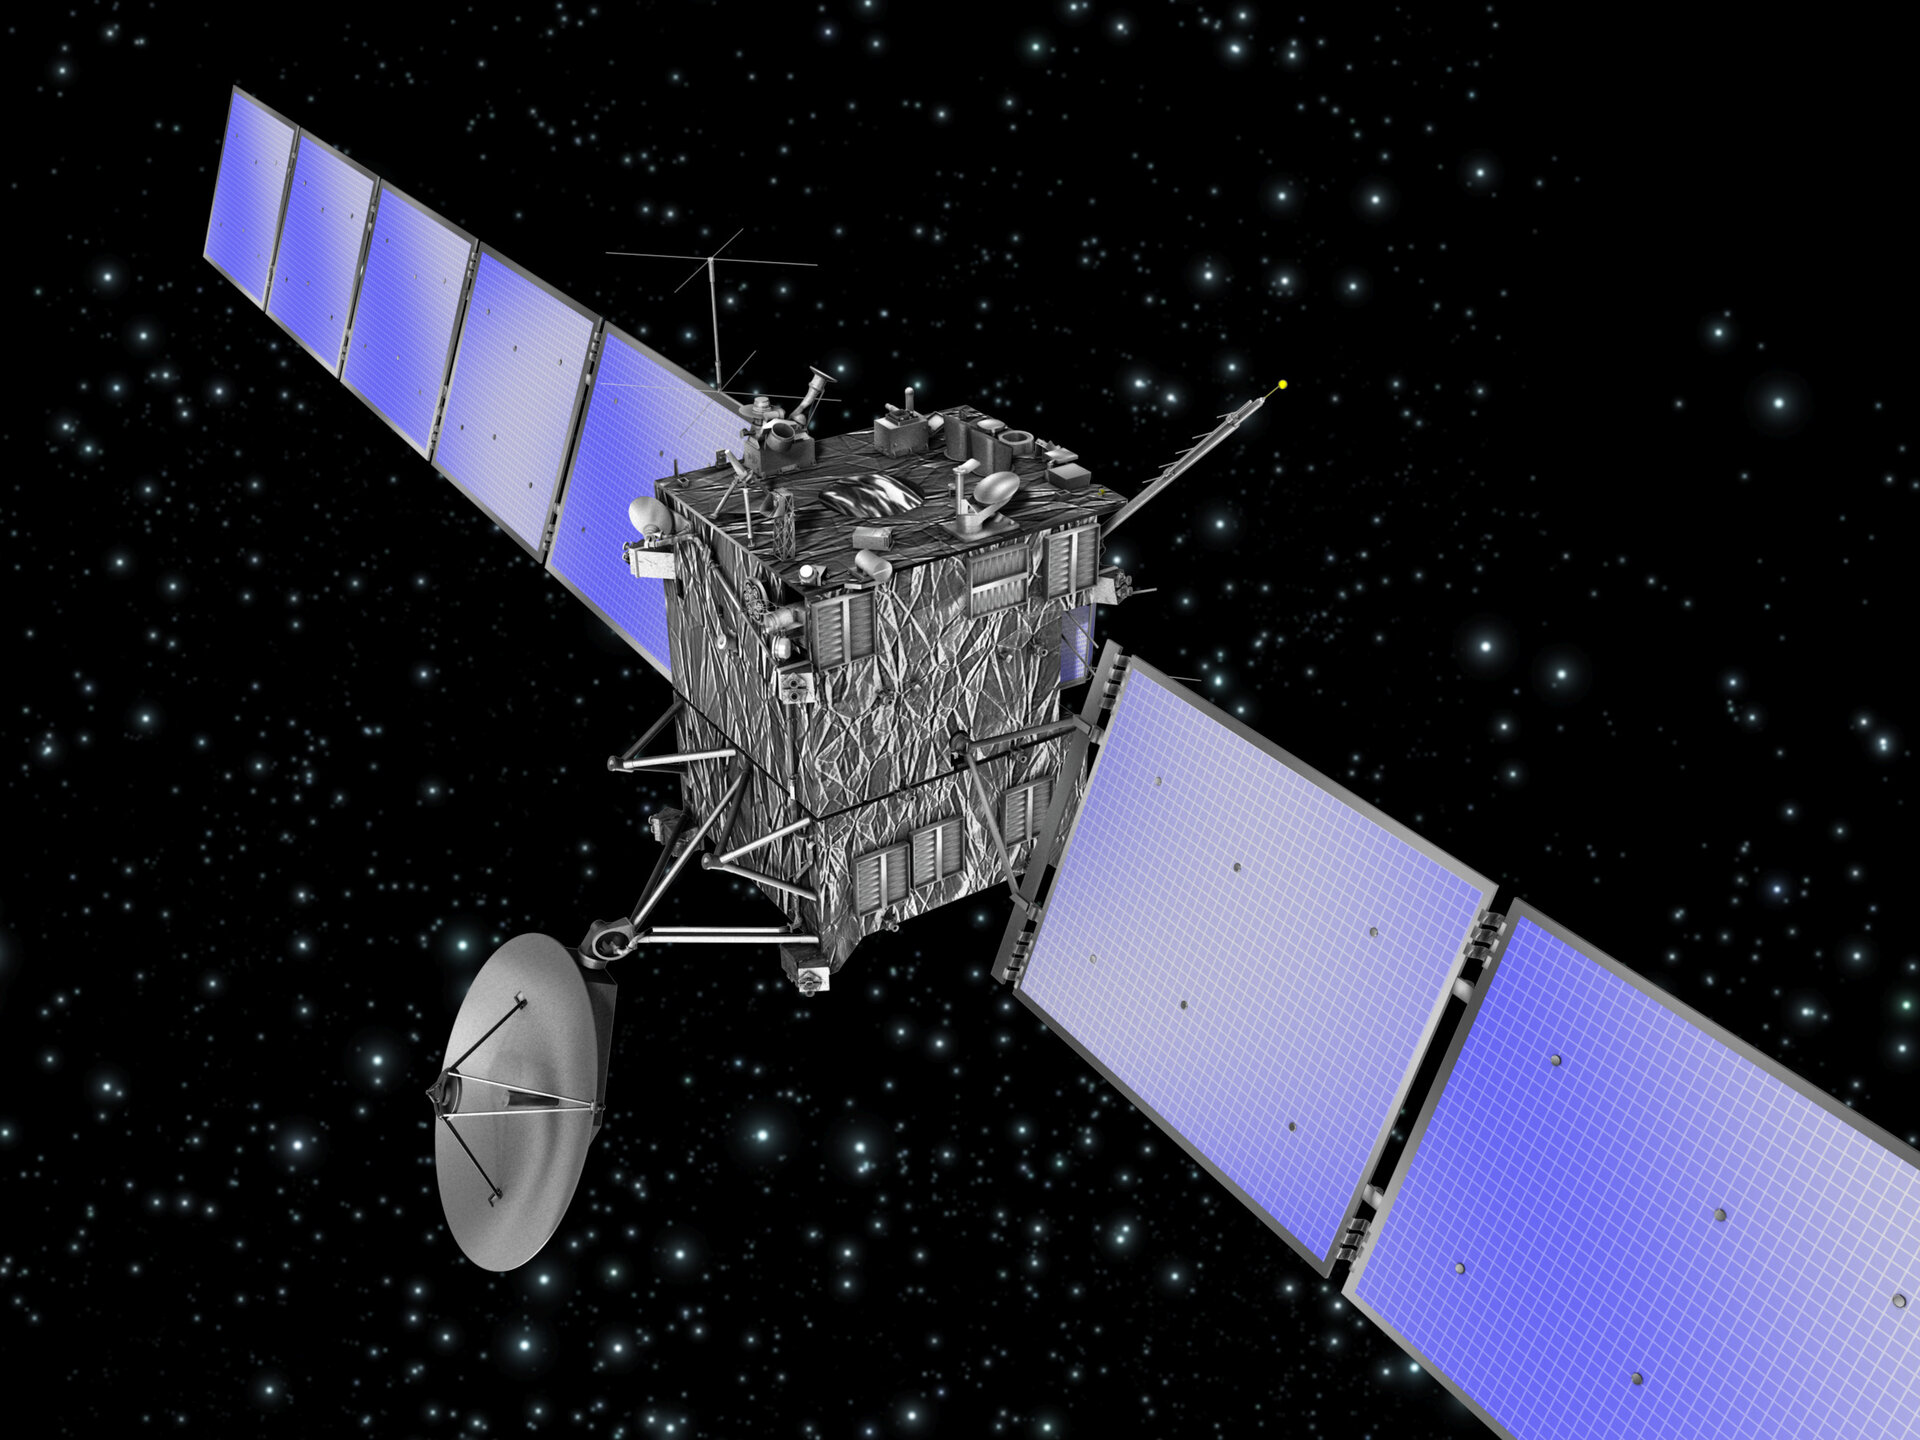 The Rosetta Spacecraft